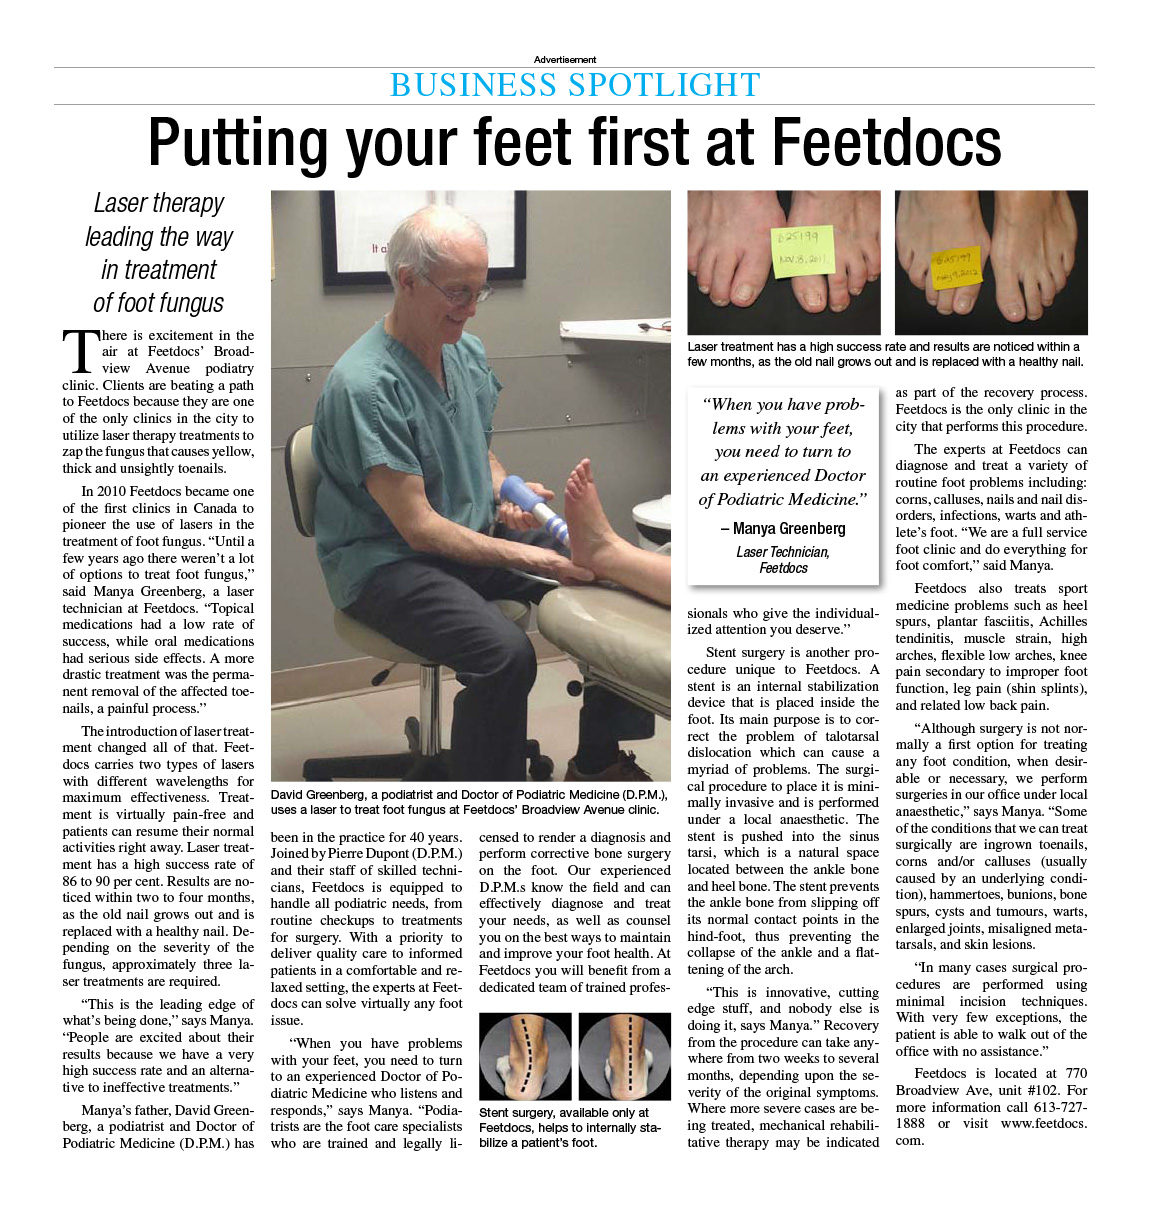 Feetdocs---Ottawa-Citizen-(2)-Advertorial